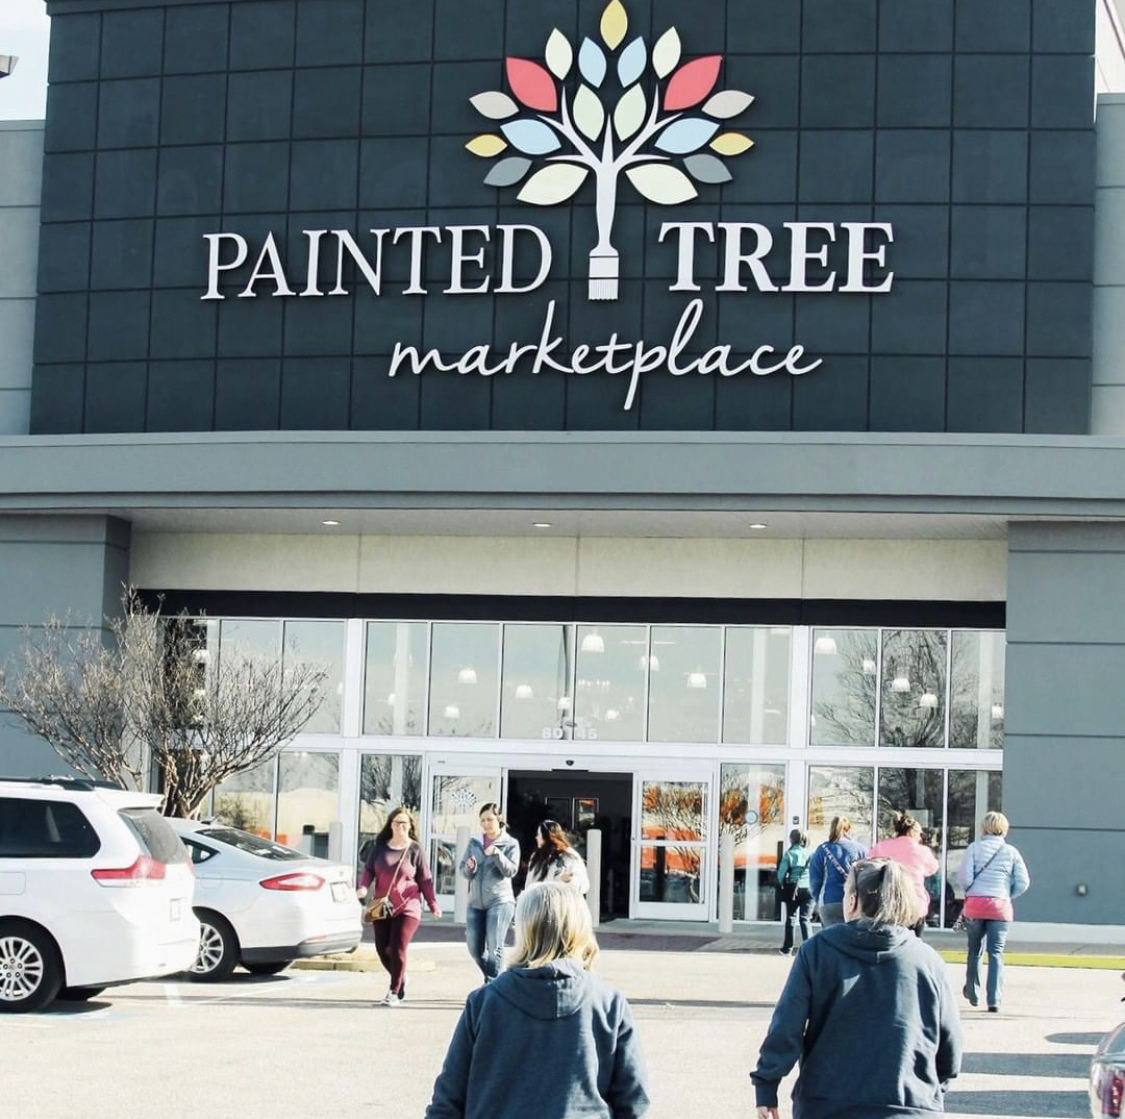 Shop 7 days a week from 10am-8pm at The Painted Tree Marketplace located at 8045 Giacosa Place, Memphis, TN.